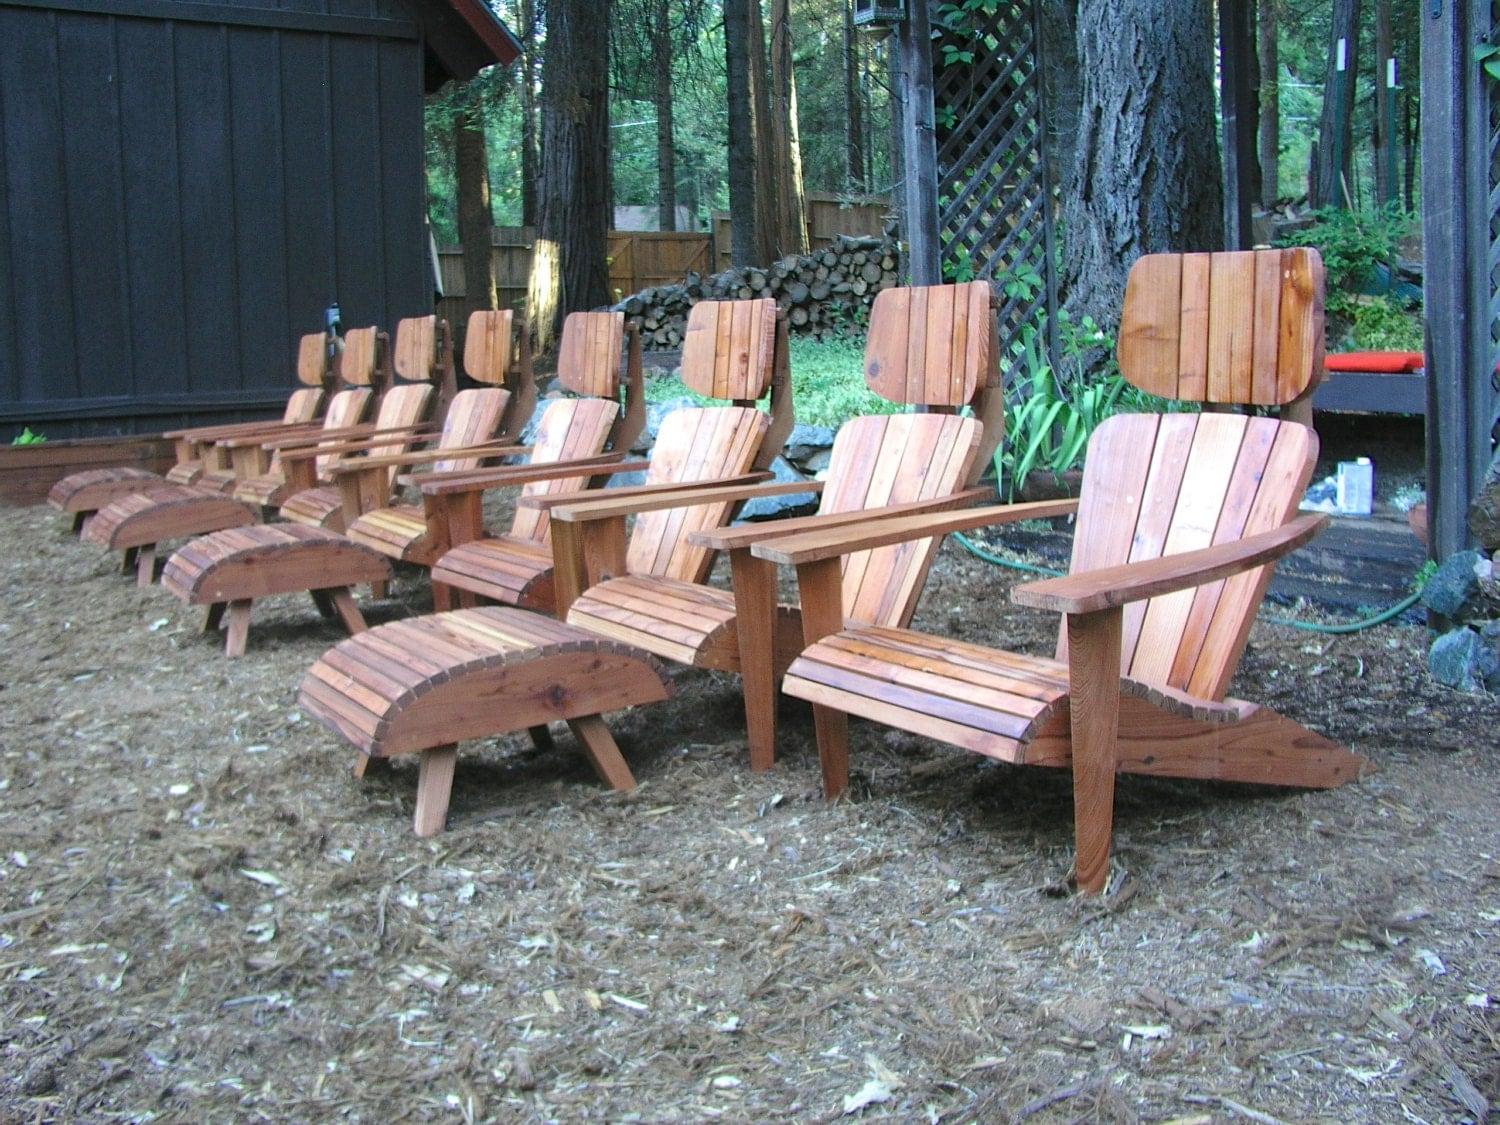 Set Of 8 Modern Adirondack Chairs With 4 Ottomans And 4 End